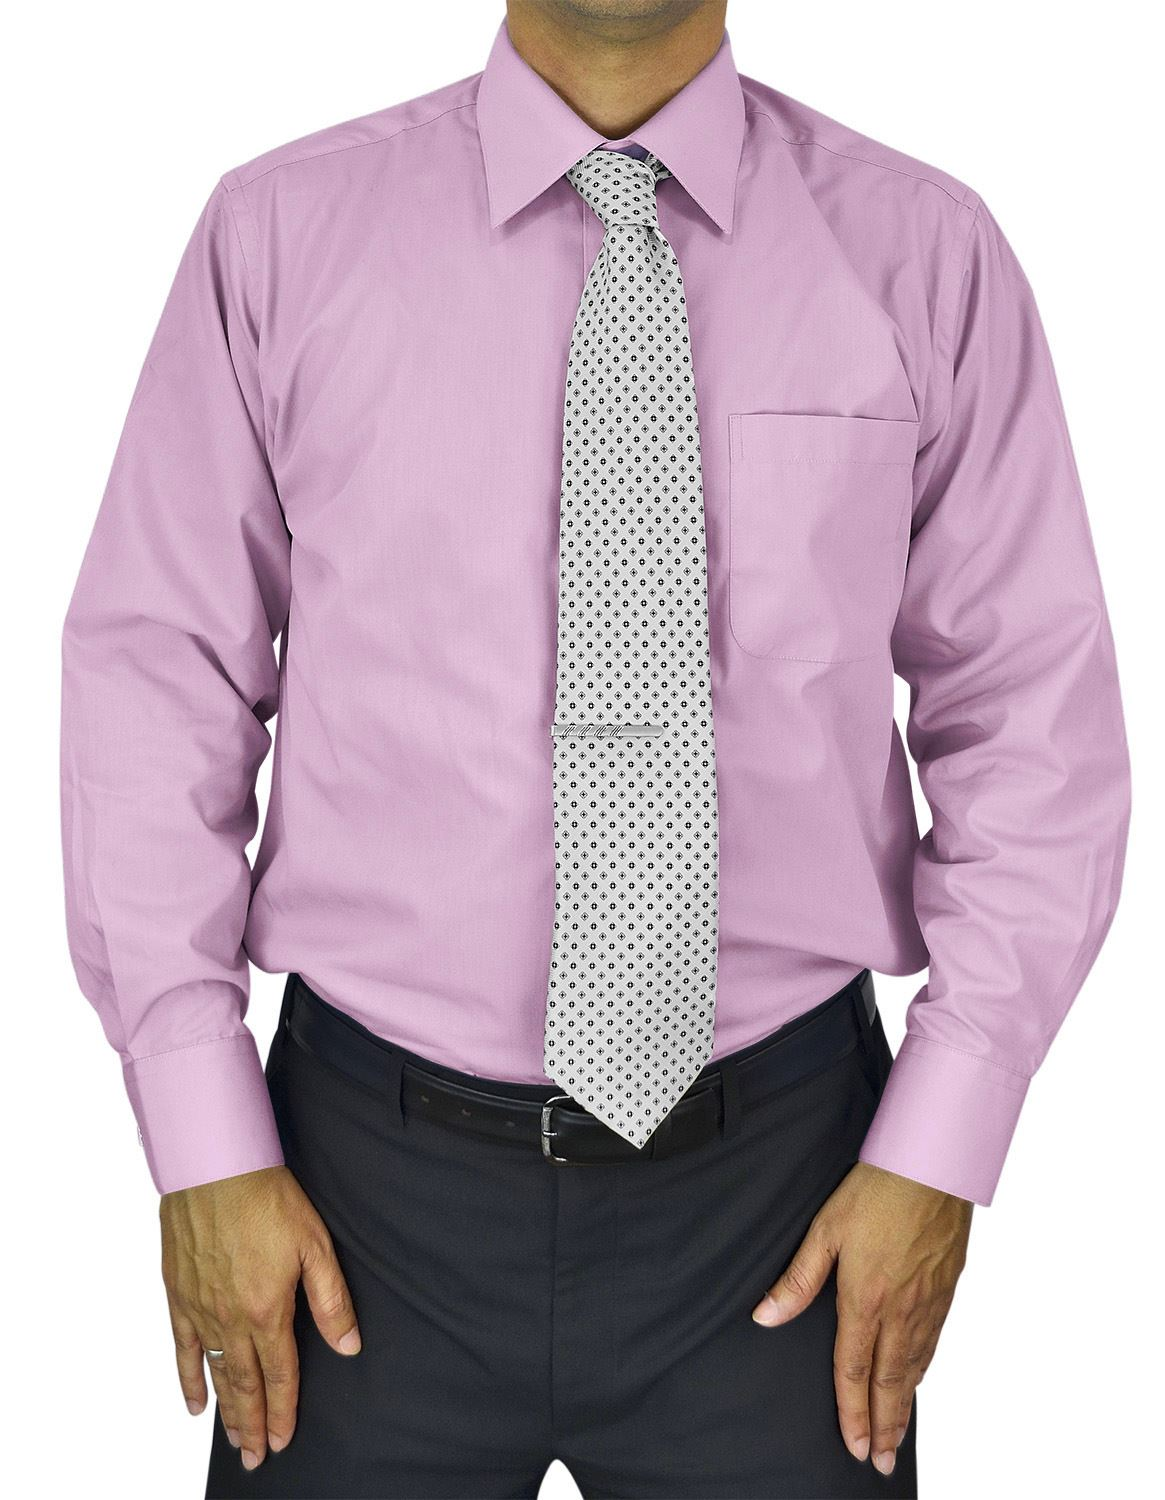 Mens Dress Shirt Slim and Regular Fit Office Casual French Cuff Moda Di Raza - Pink 14.5